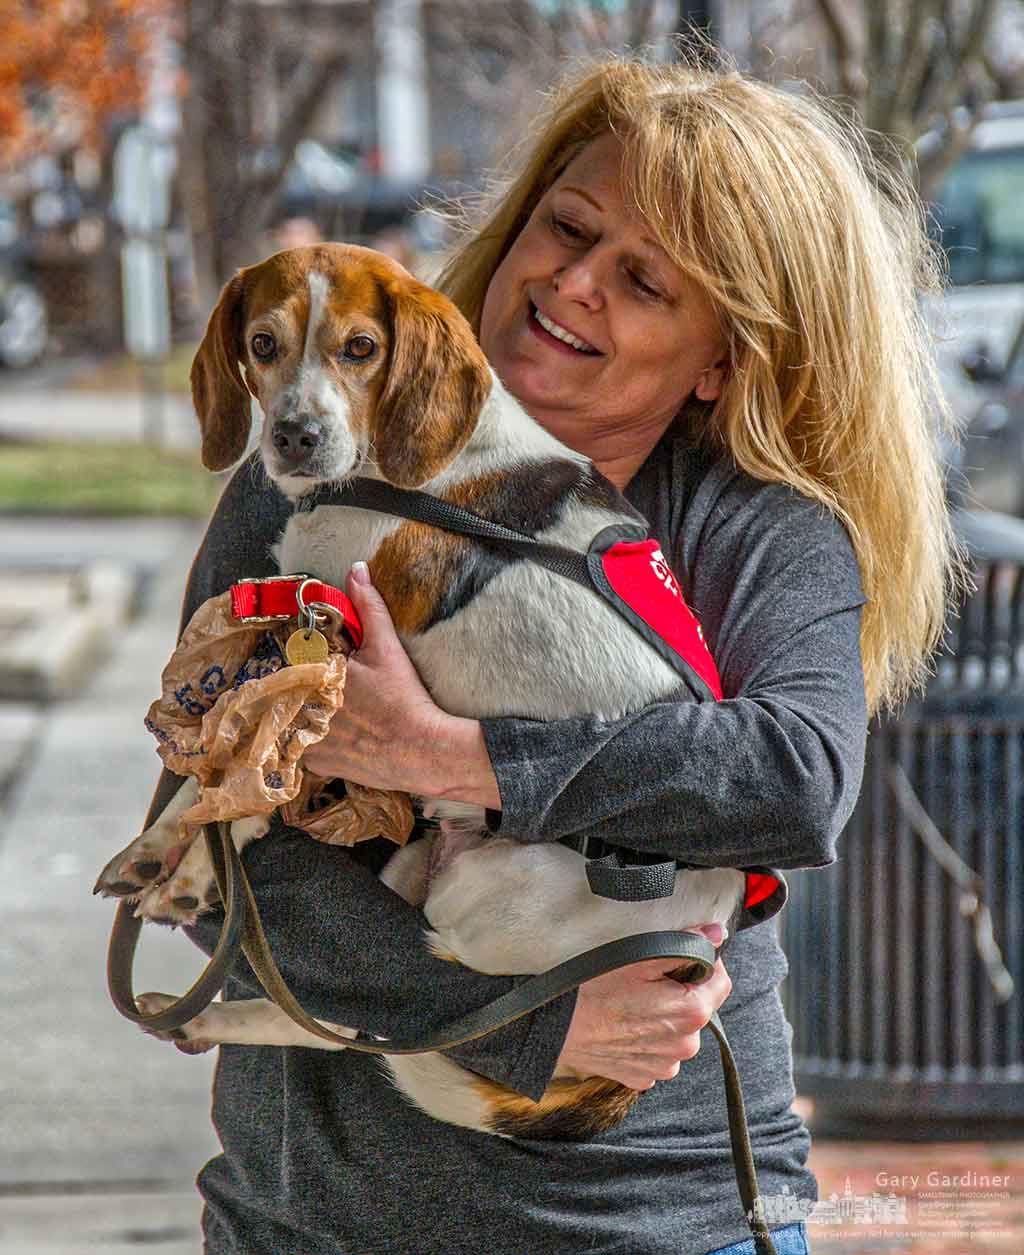 A handler from the CHA Animal Shelter retrieves a Beagle after it avoided its leash on the way to an adoption event at Captivating Canines in Uptown Westerville. My Final Photo for Jan. 21, 2017.